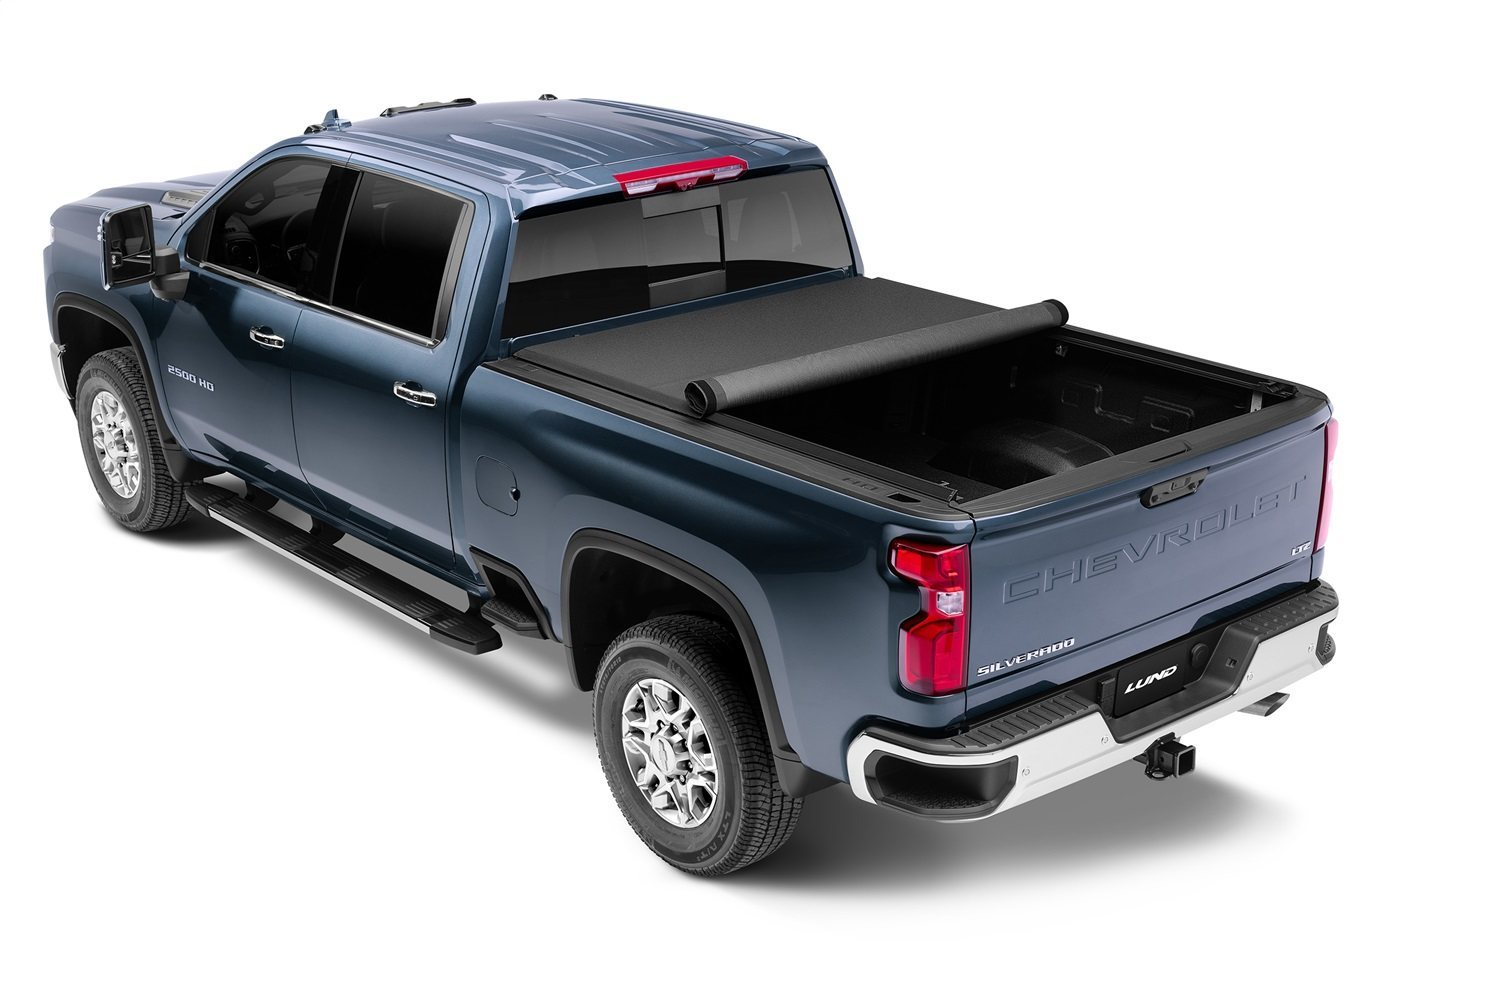 Dodge Ram 1500 Lund Genesis Roll Up Tonneau Cover 96064